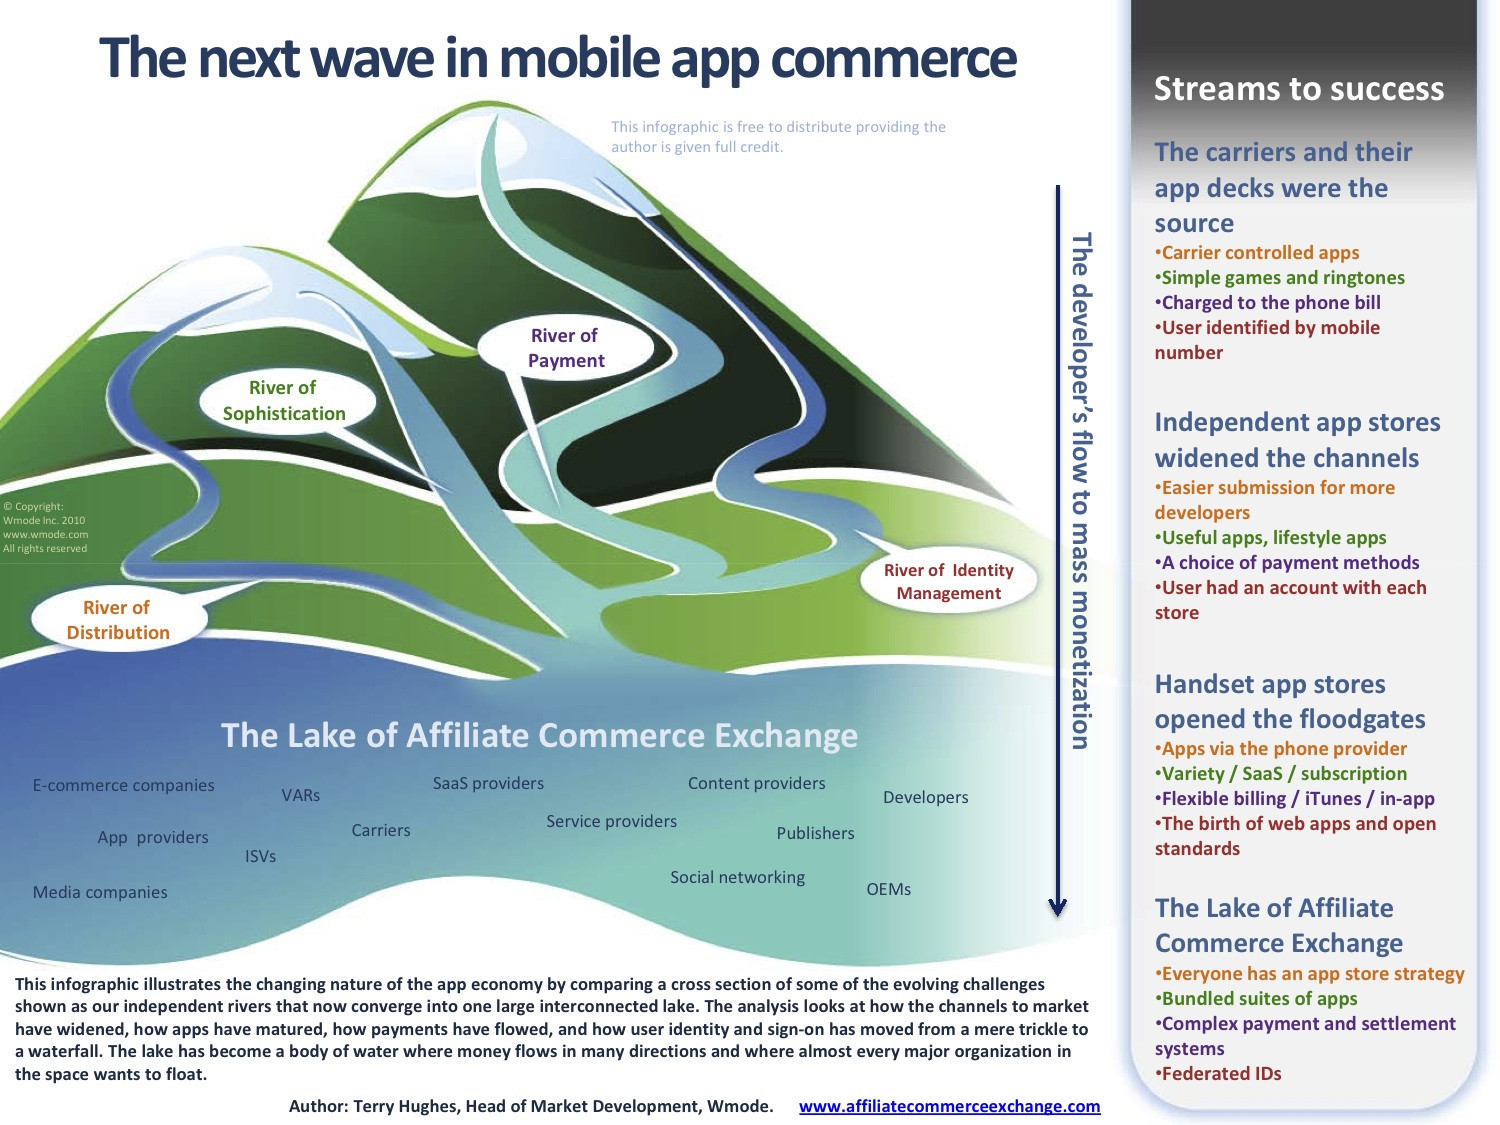 The Next Wave in Mobile App Commerce  Infographic